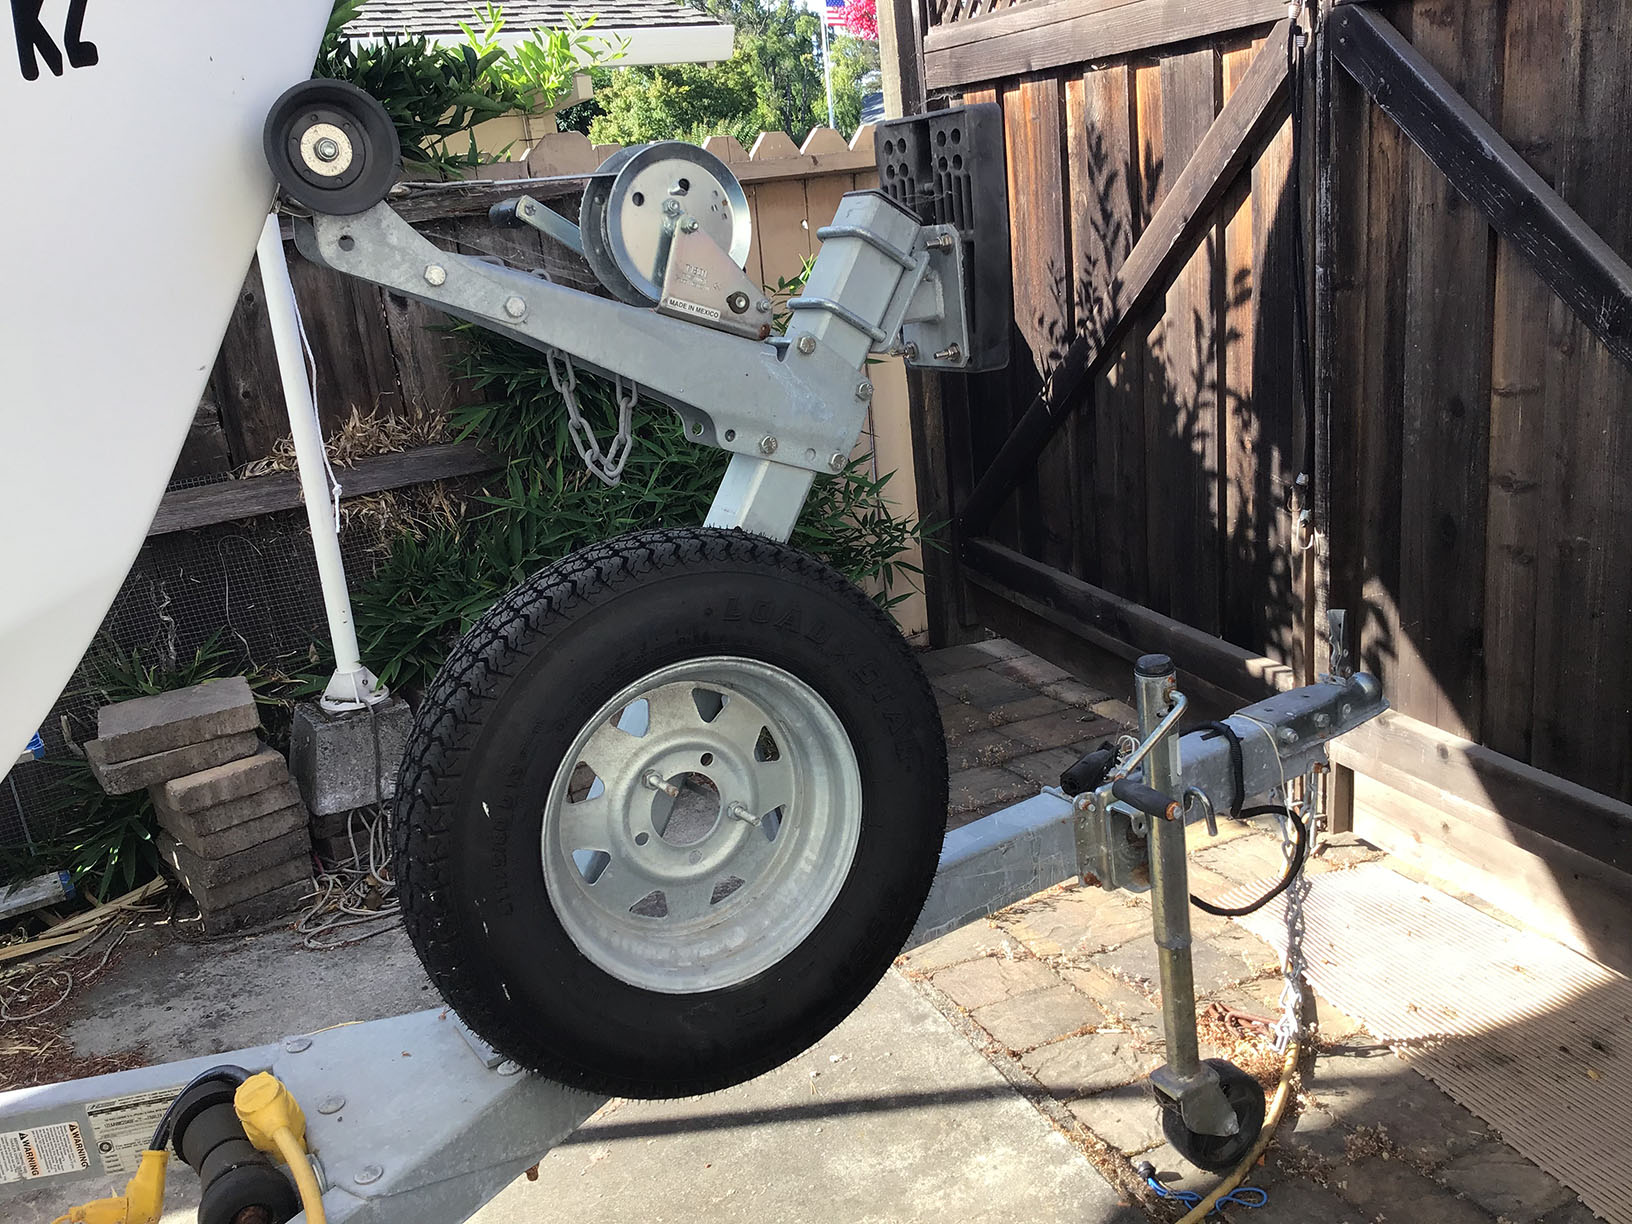 potter 19 bowstop with OB mount.jpg